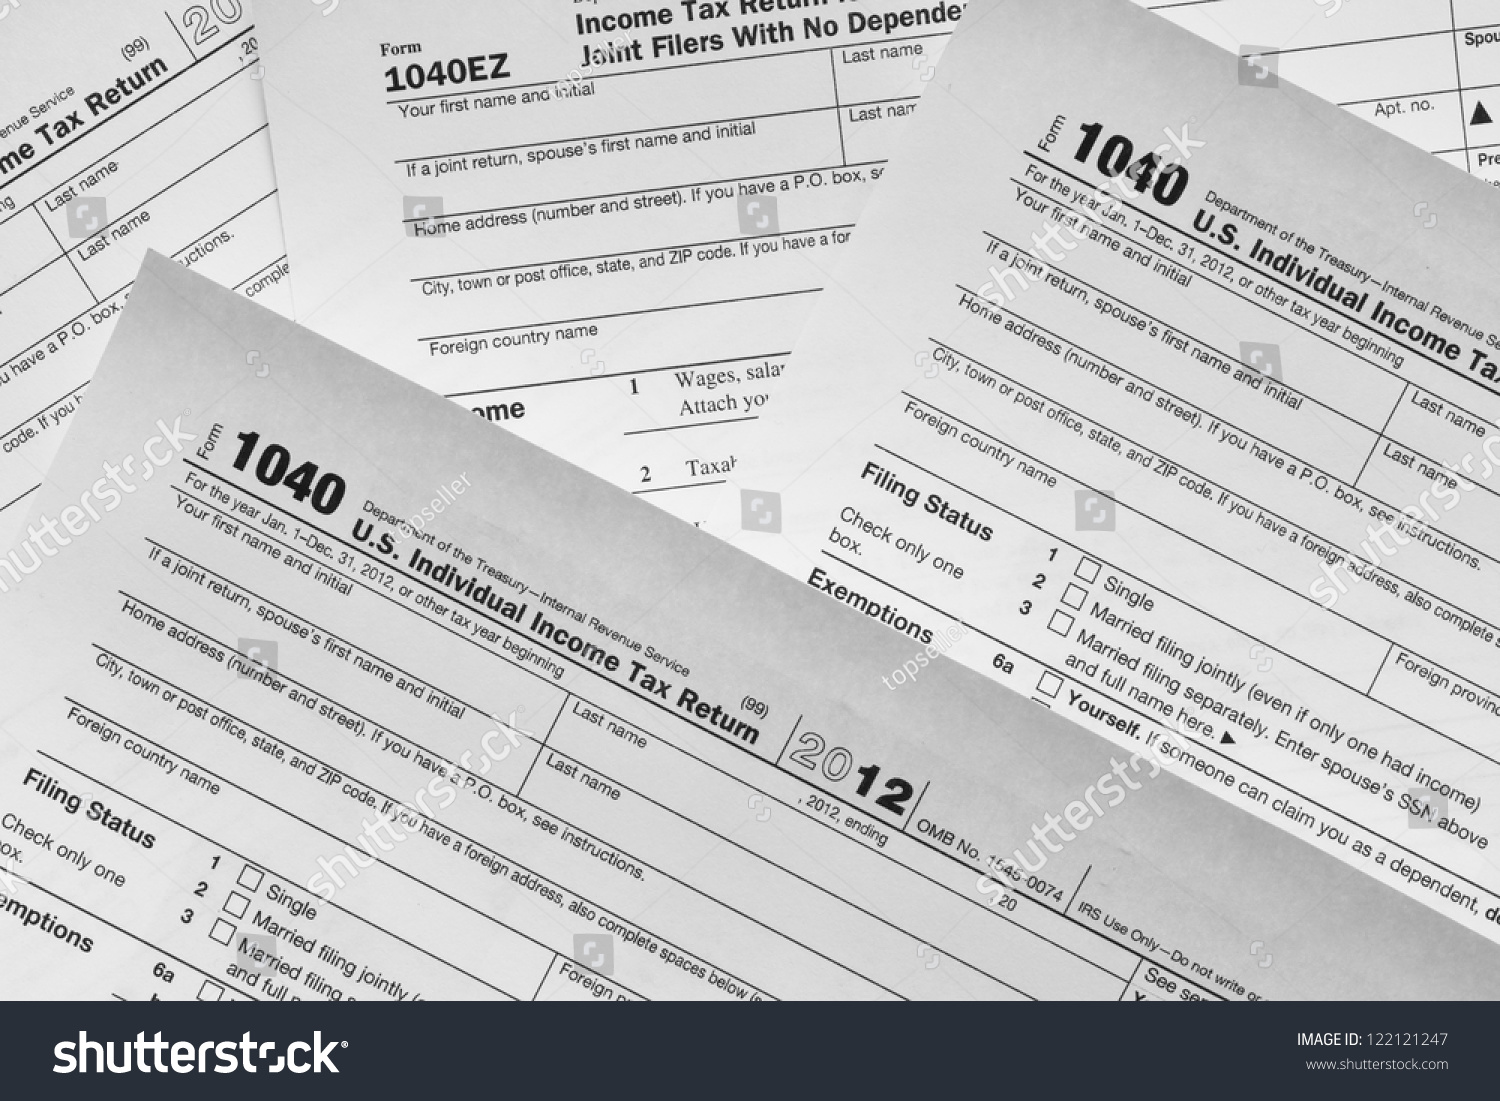 Form 1040 Individual Income Tax Return Form United States Tax Forms